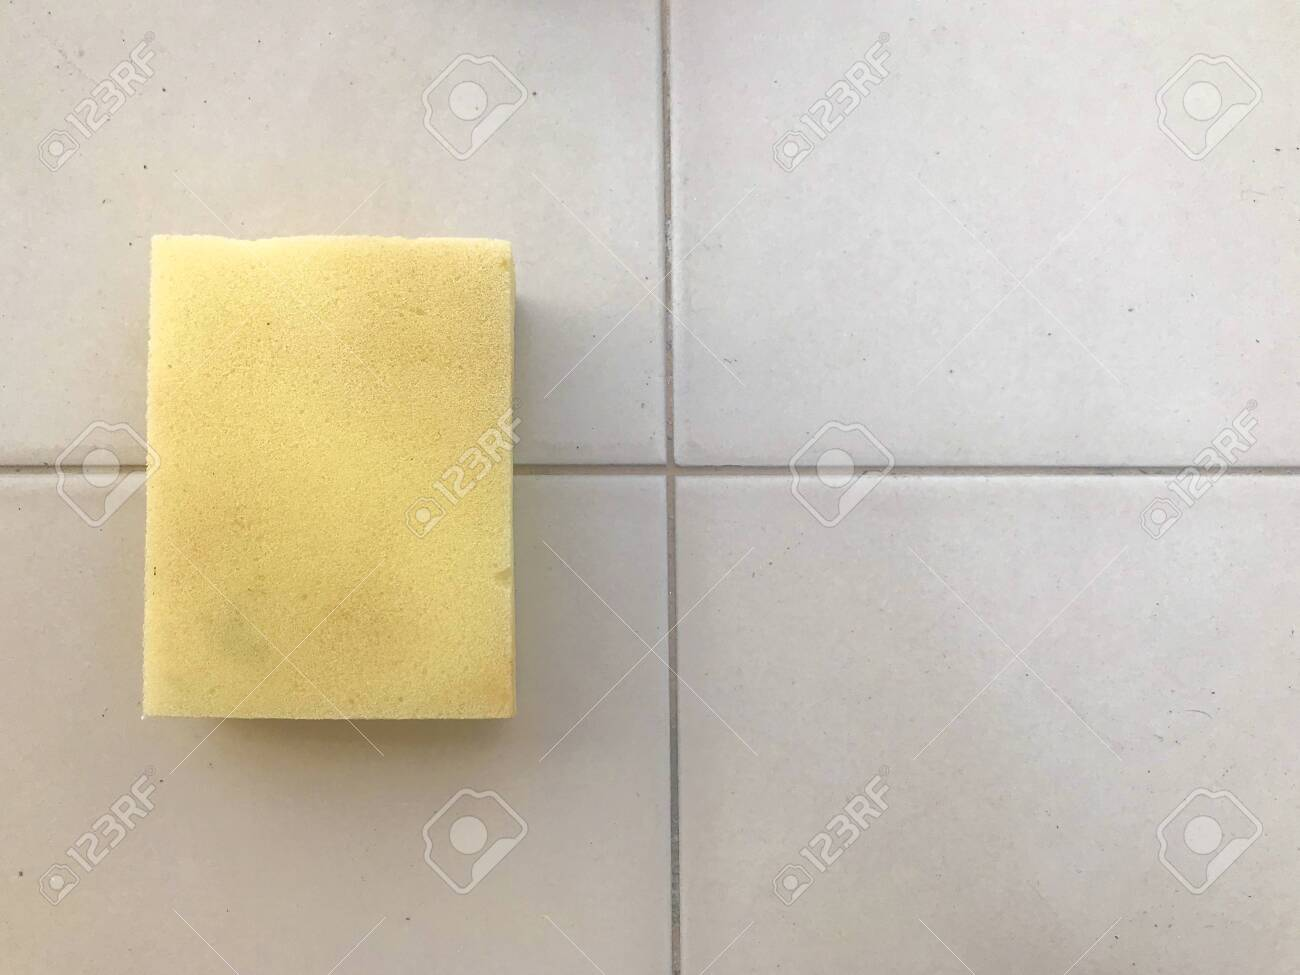 yellow sponge for wash cleaning on ceramic tile wall background. - 123104643